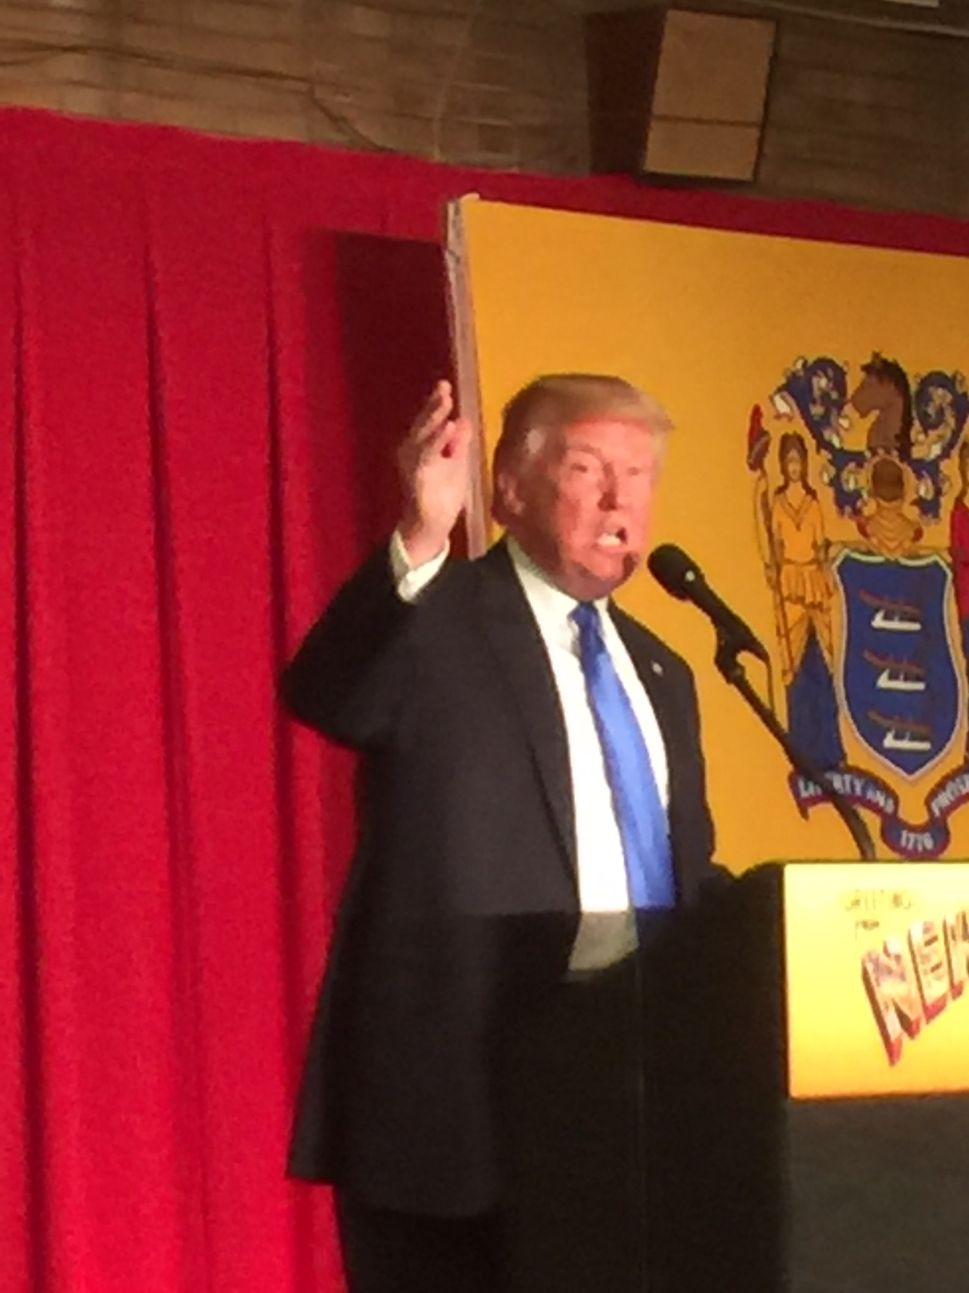 Trump Joins Christie for GOP Rally in Lawrenceville